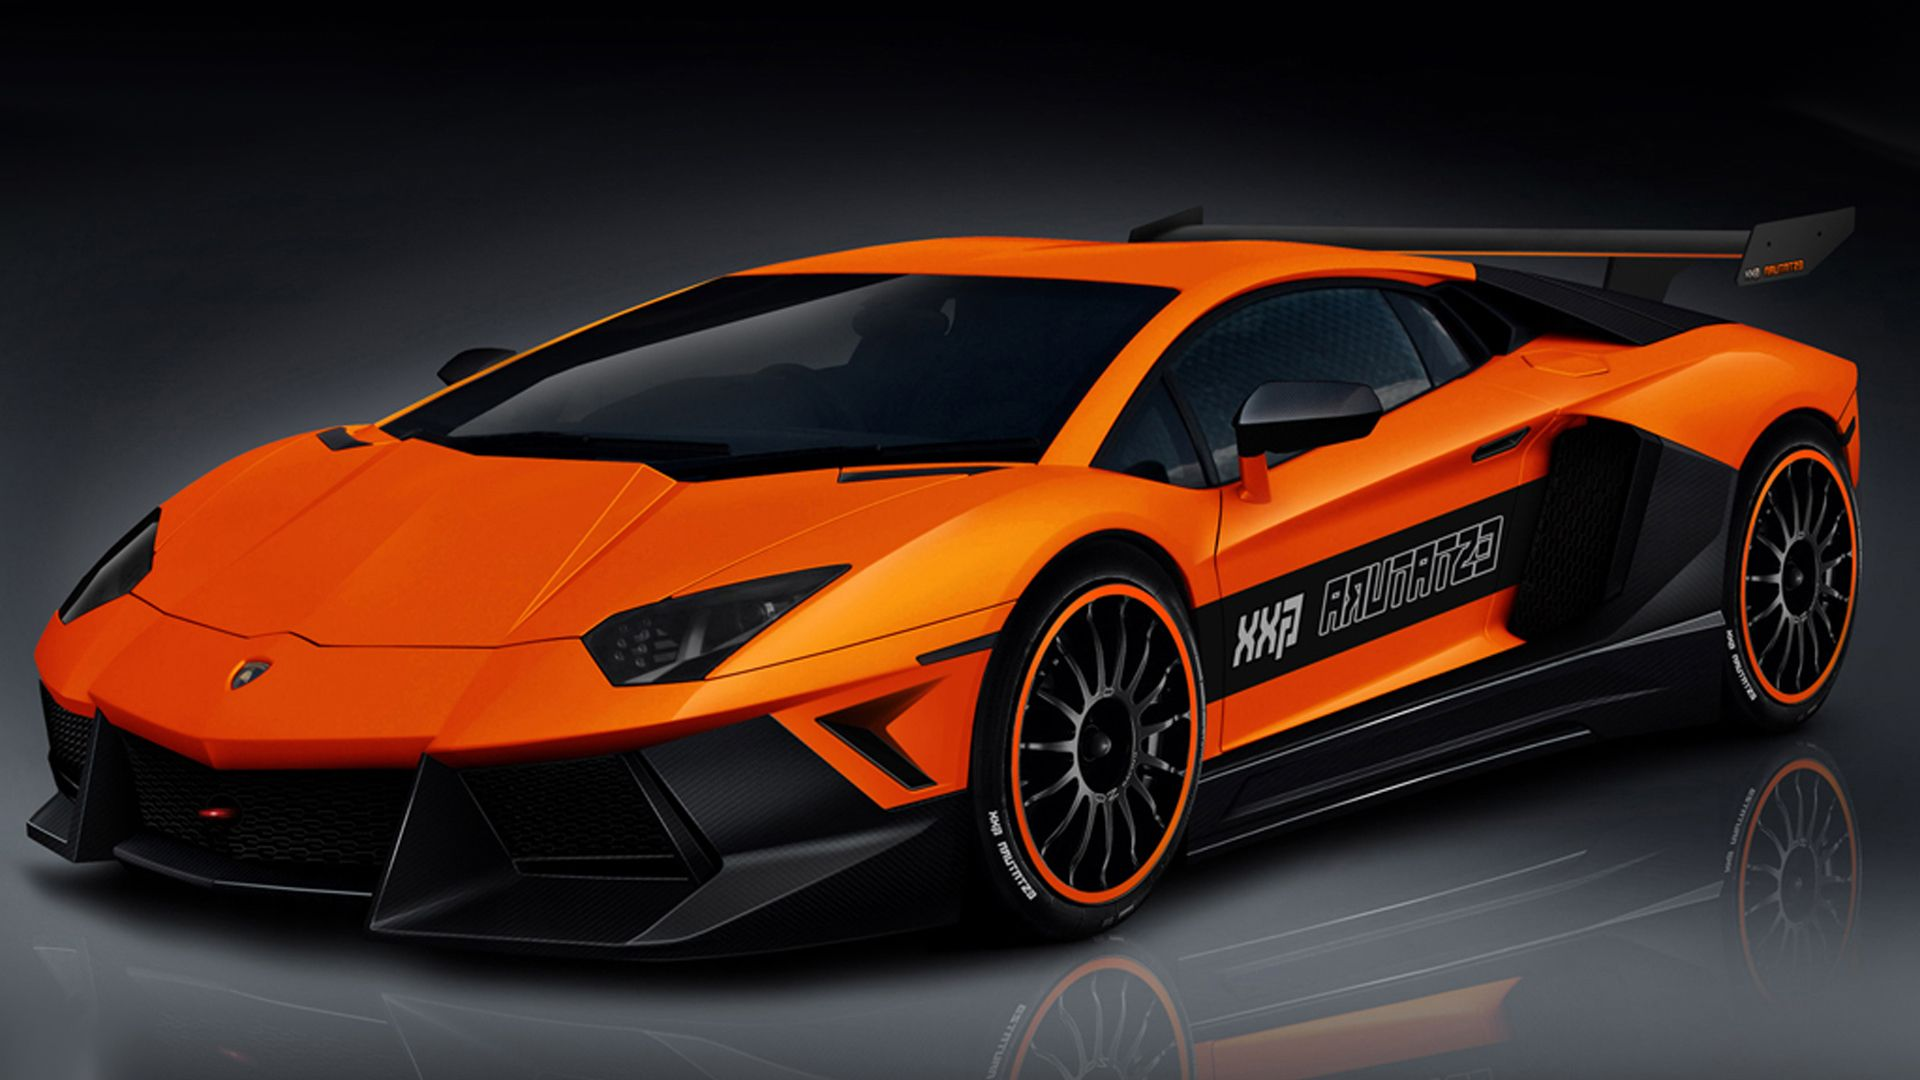 Go Car Denver: New Car Lamborghini Aventador Wallpapers 2015 #383